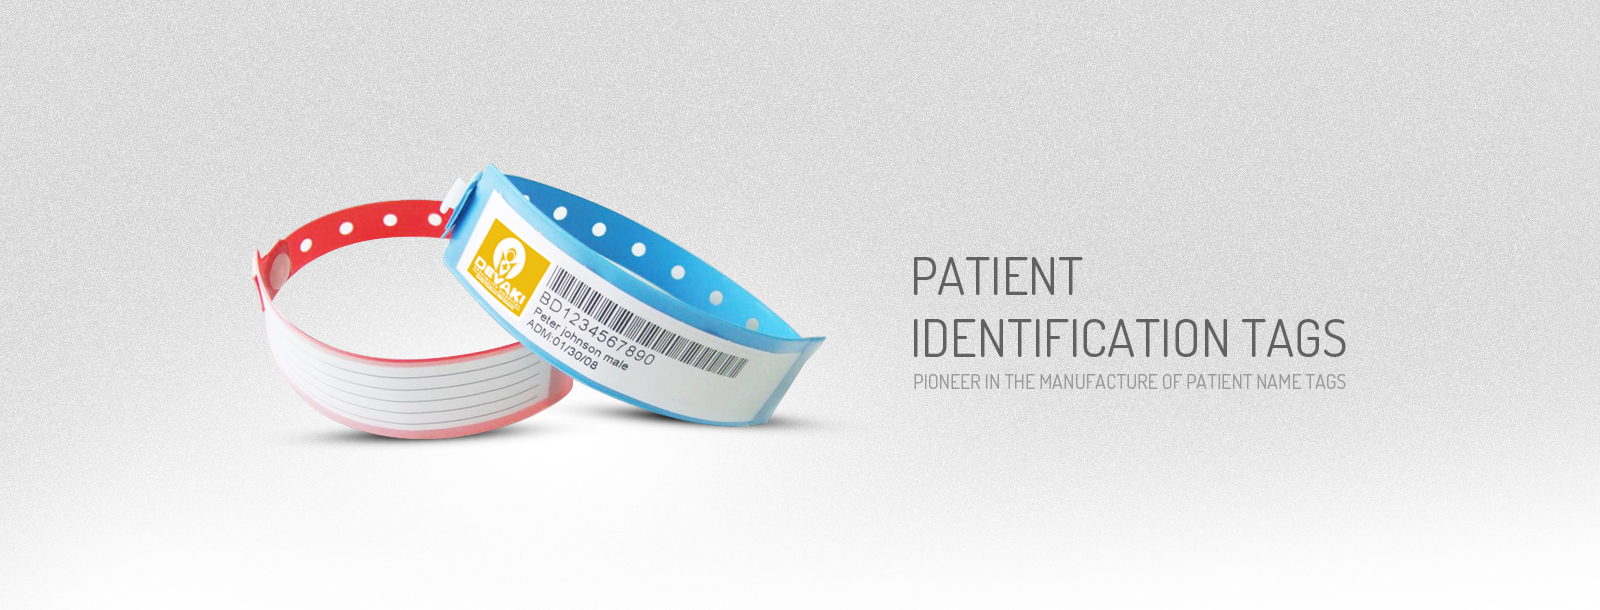 Patient Identification Tags